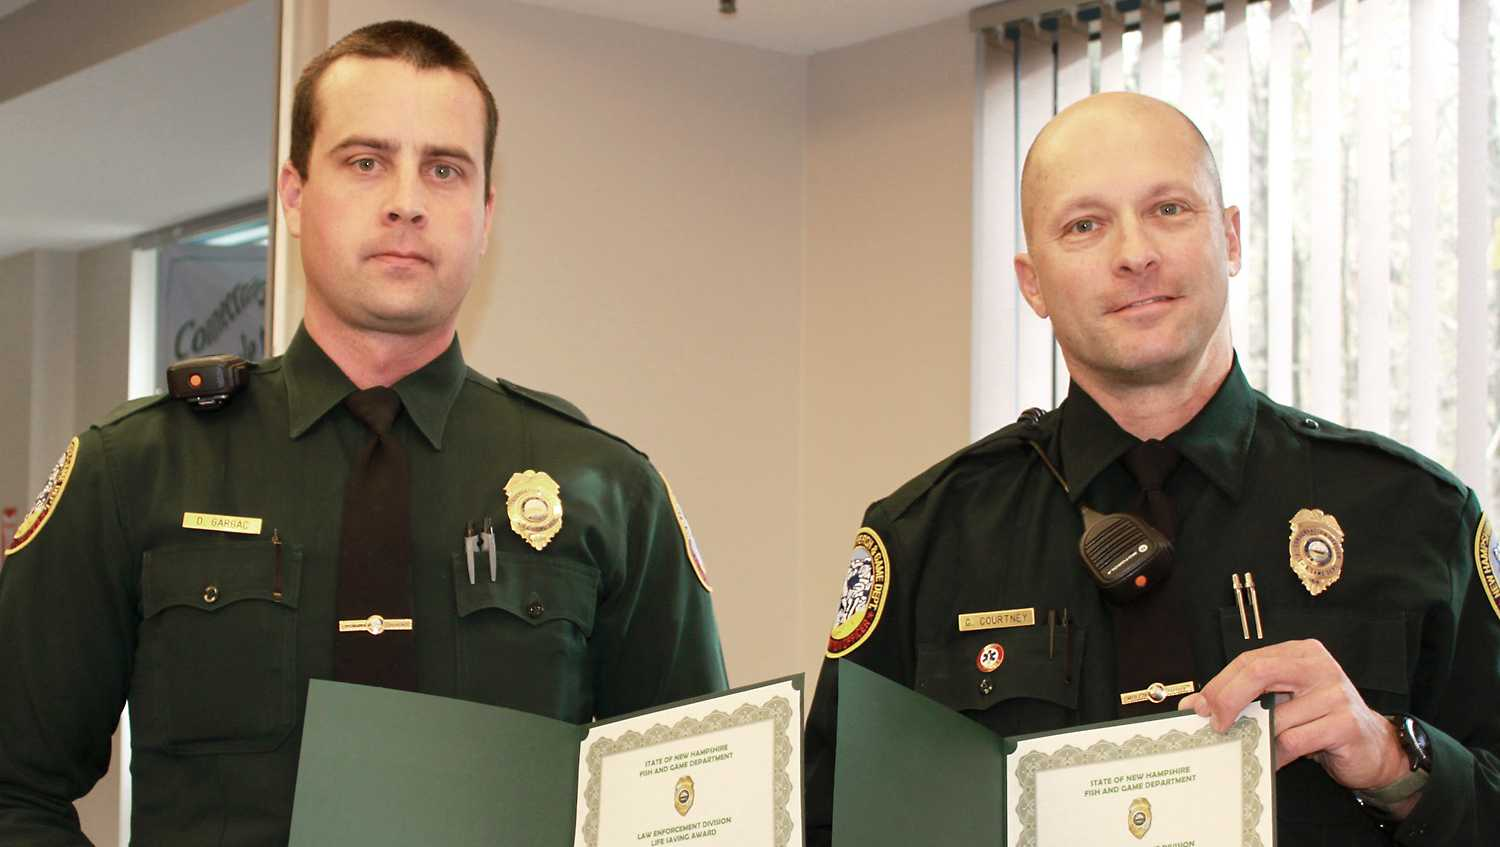 Left: Officer Dale Gargac, Right: Officer Graham Courtney